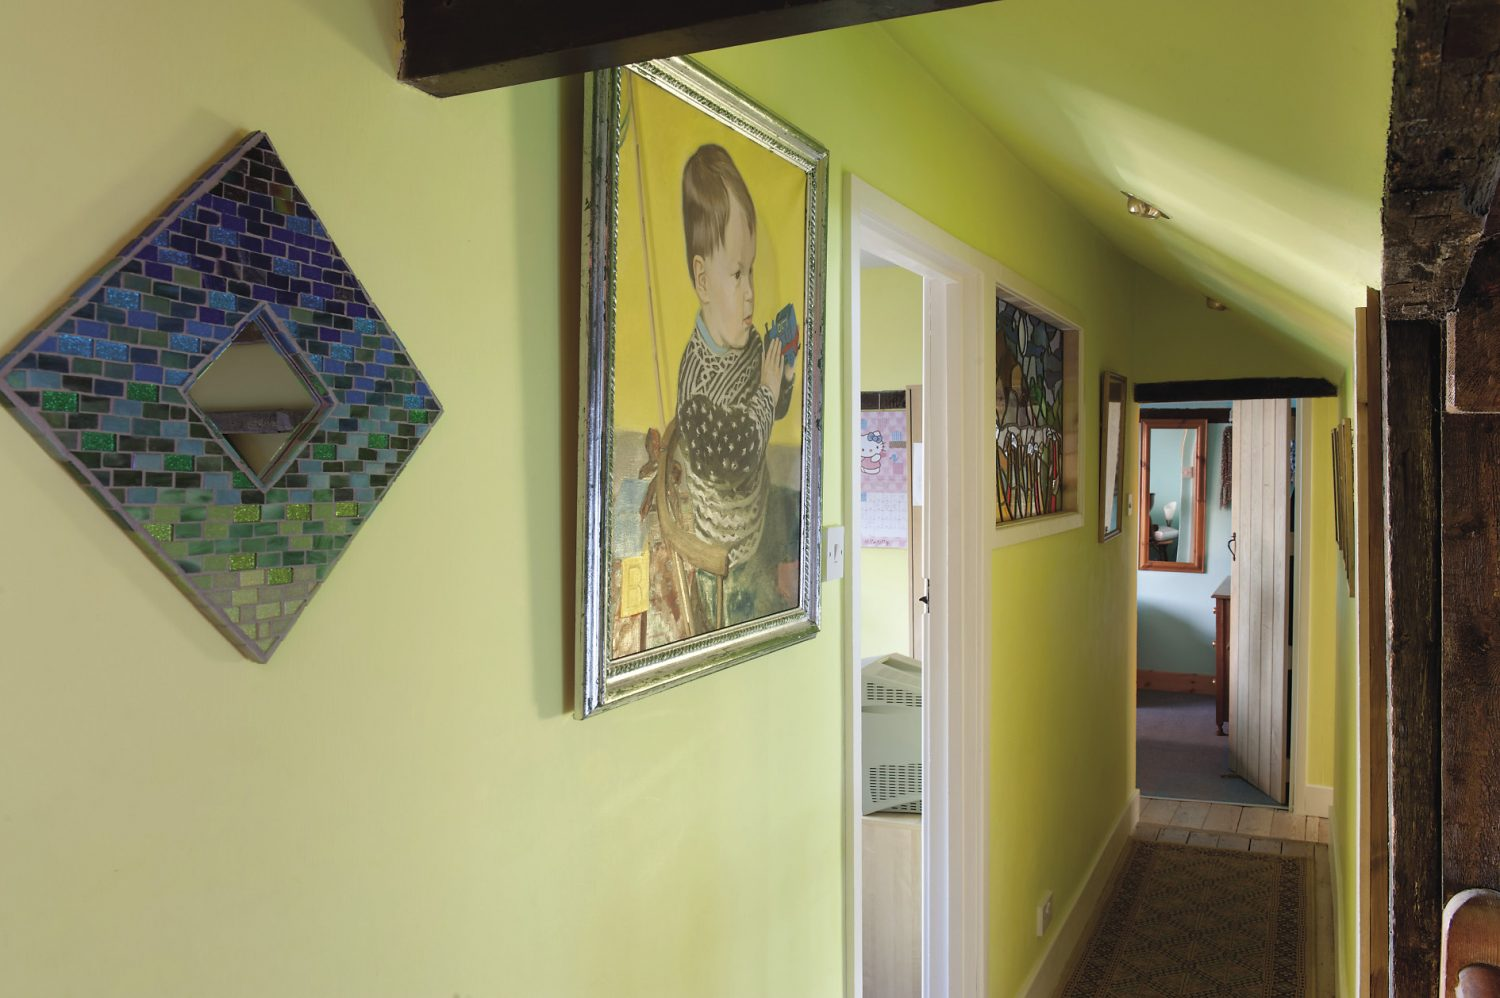 On the wall at the top of the wooden staircase, there is a striking painting of the couple's son, by Stephen Rose